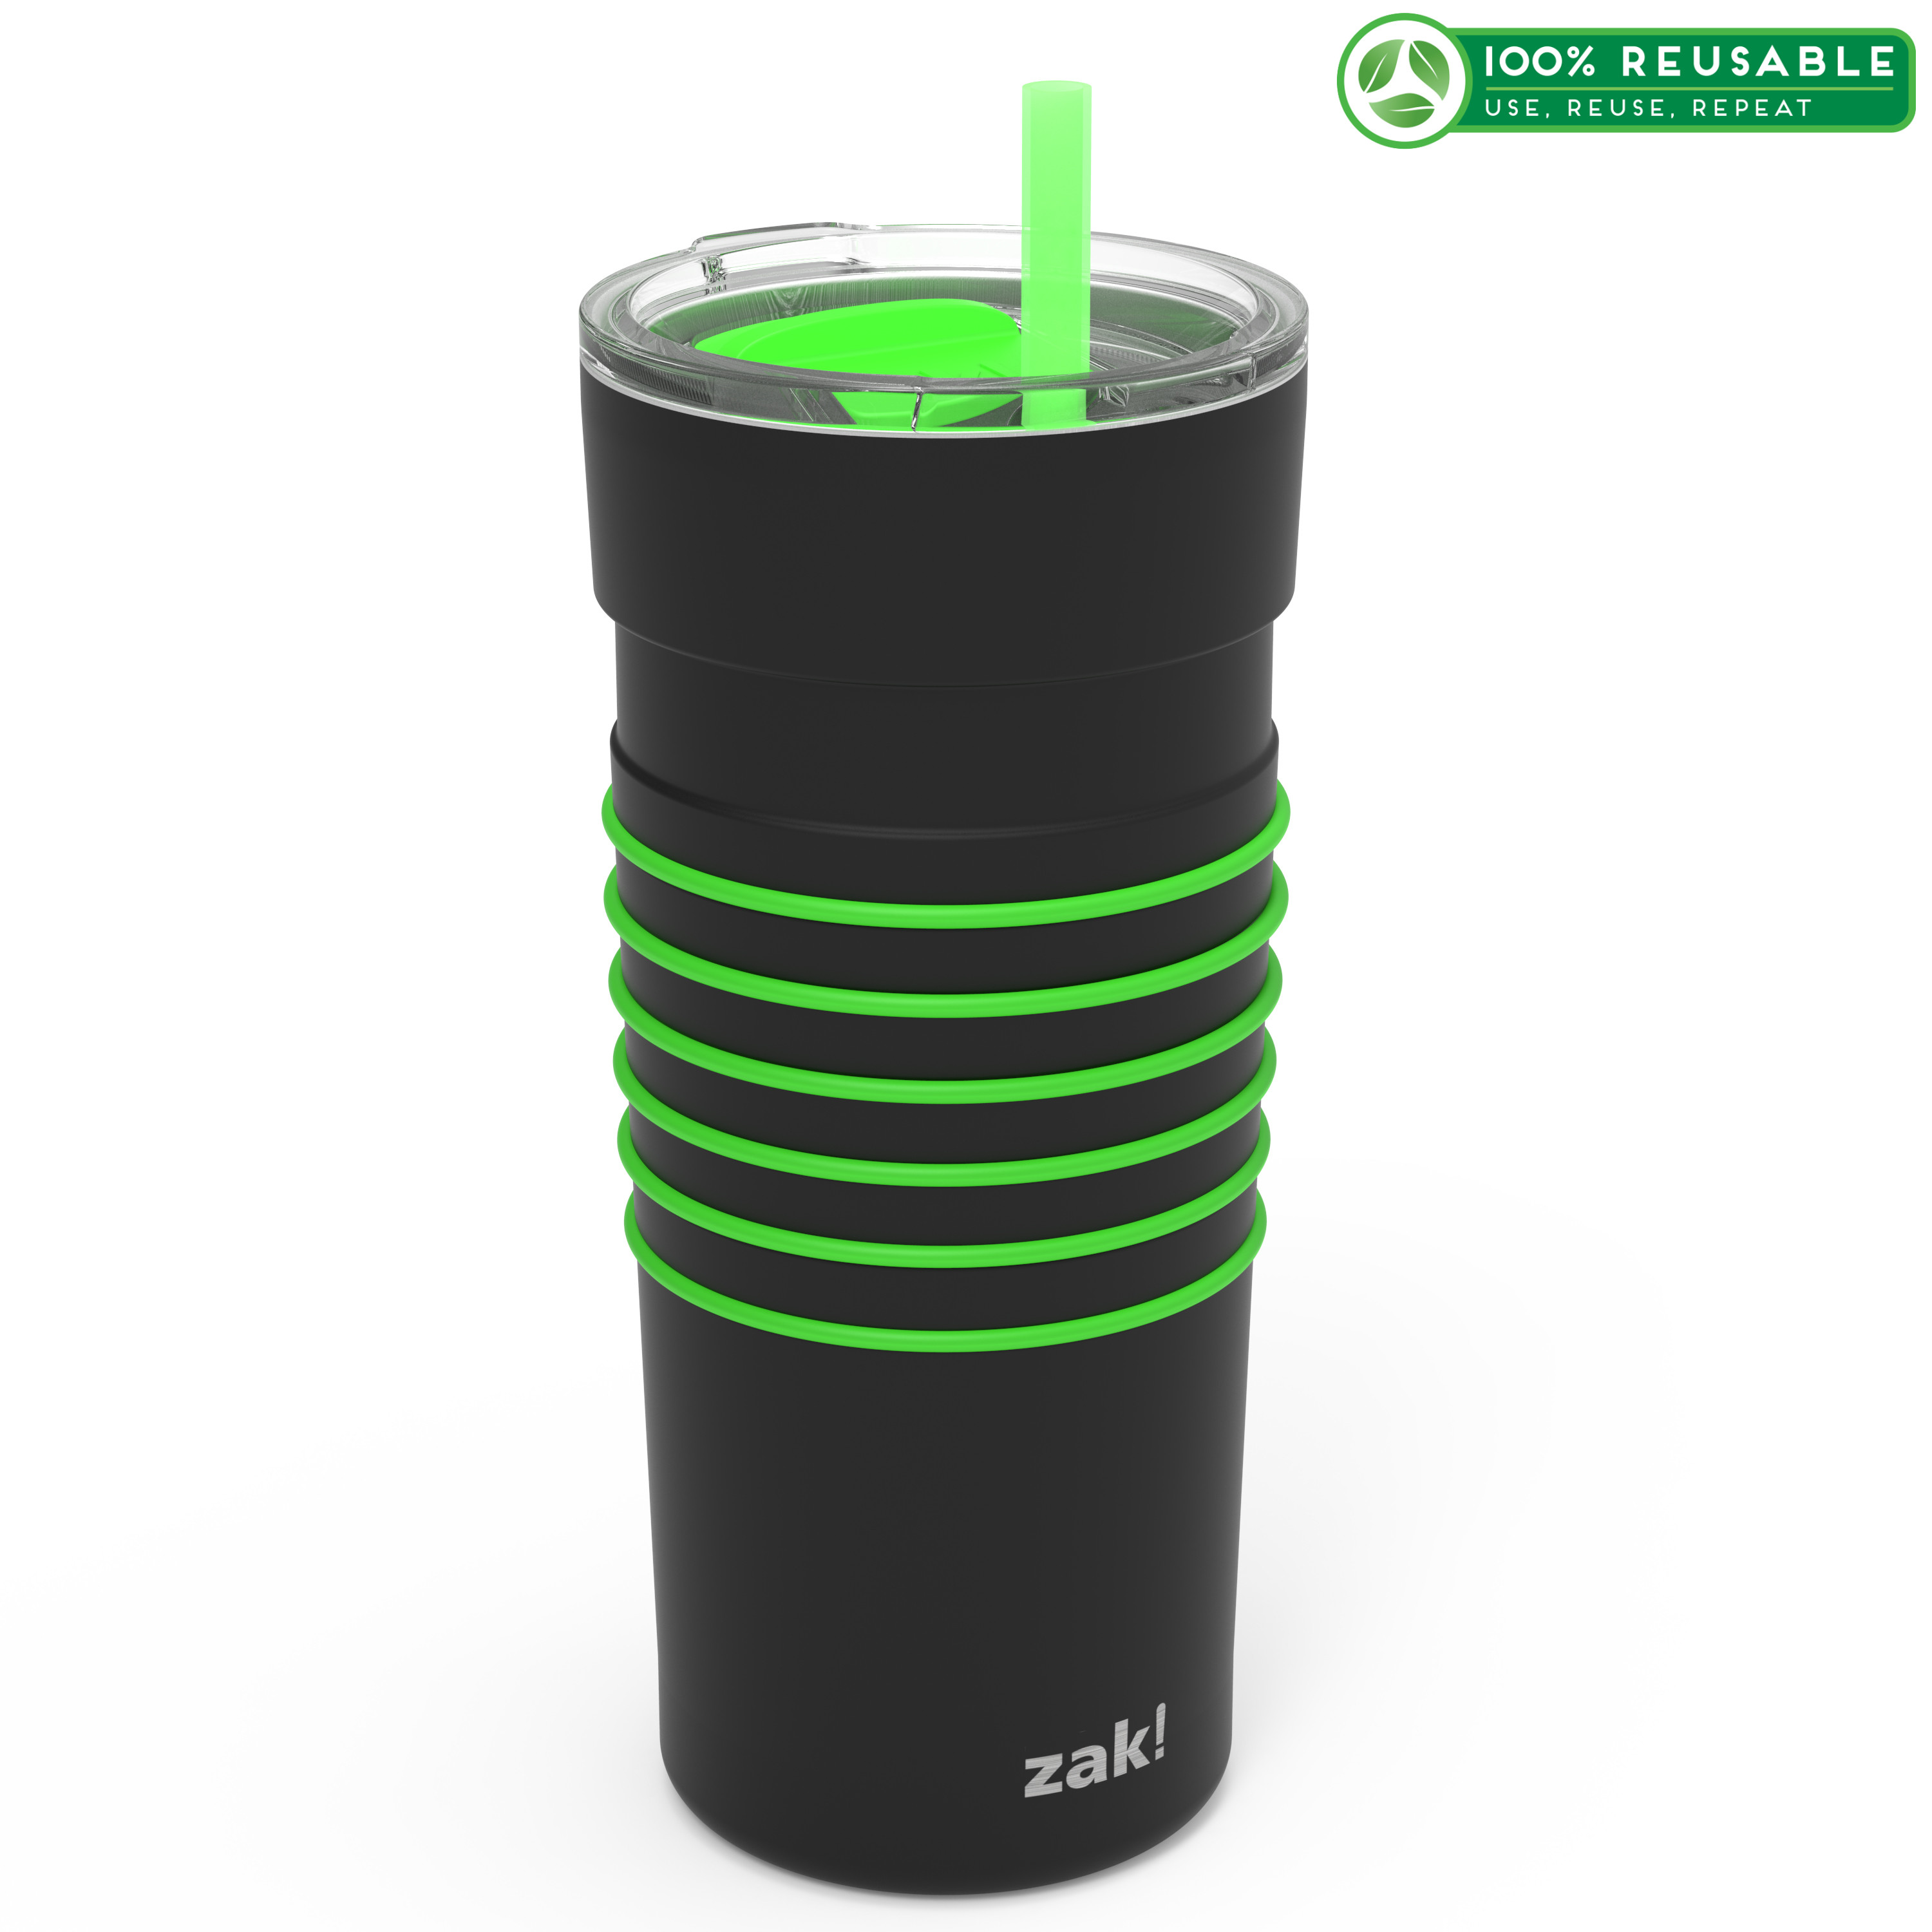 HydraTrak 20 ounce Vacuum Insulated Stainless Steel Tumbler, Black with Green Rings slideshow image 1